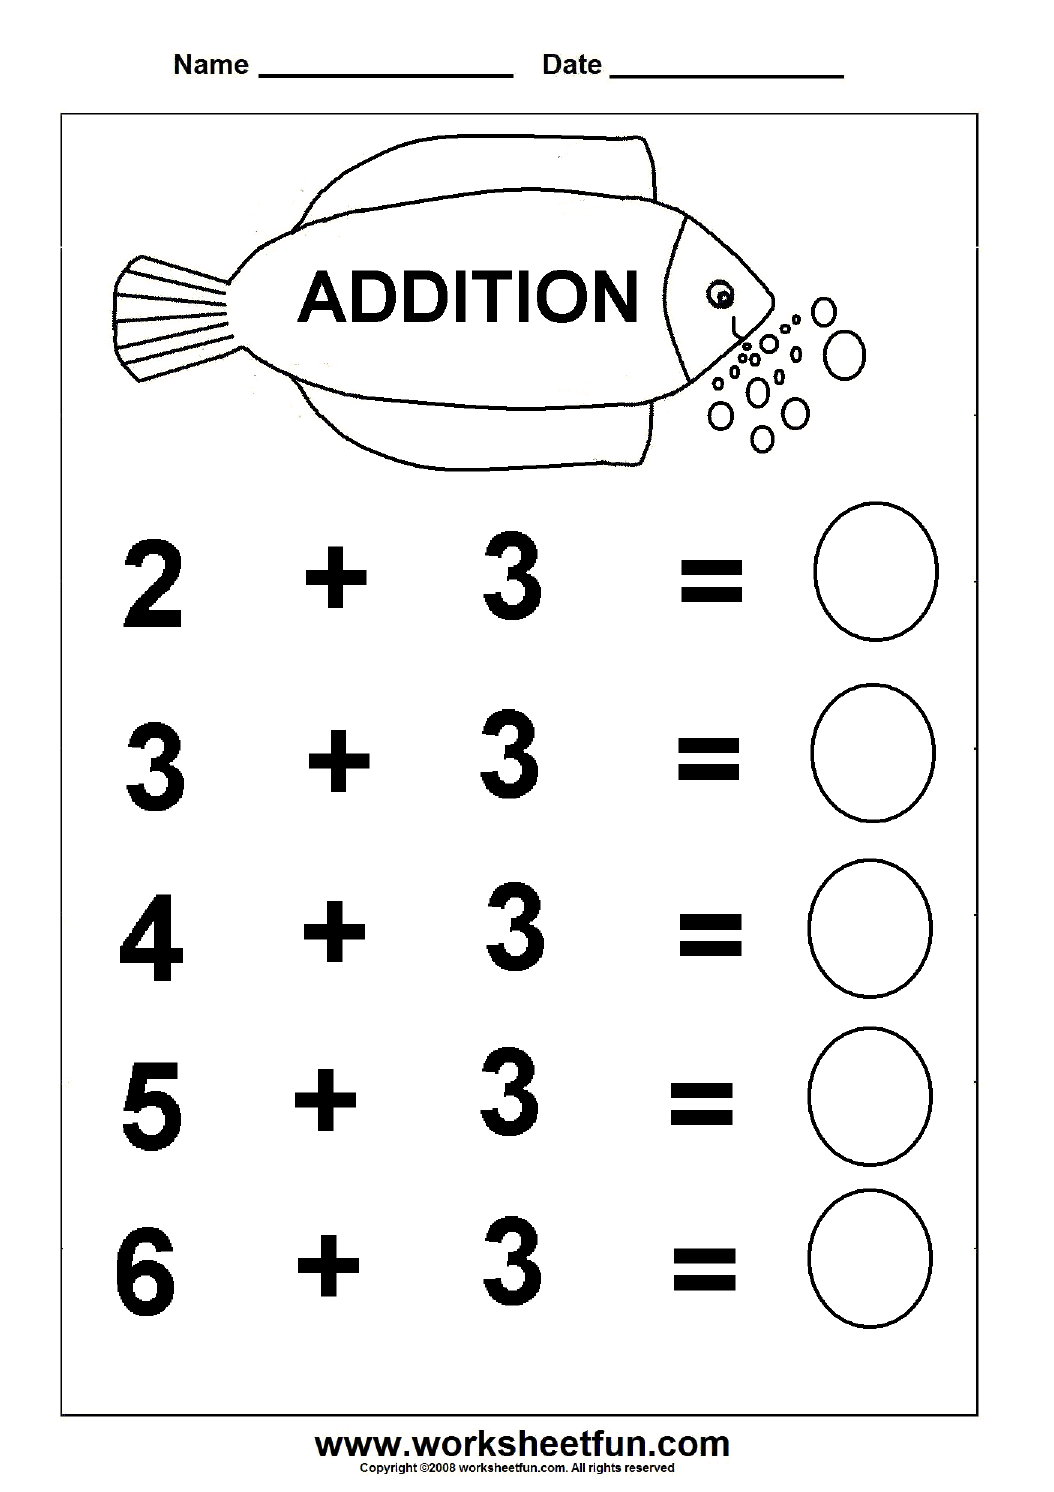 E Ac De E De Cfb Fb C B B Dabd together with Fb E F Ae F Ca A C together with E B B B Ff F A E B B together with L Ea B Cc E F C moreover Ae A A Dc A Ab Da. on ten frame addition practice printable worksheet